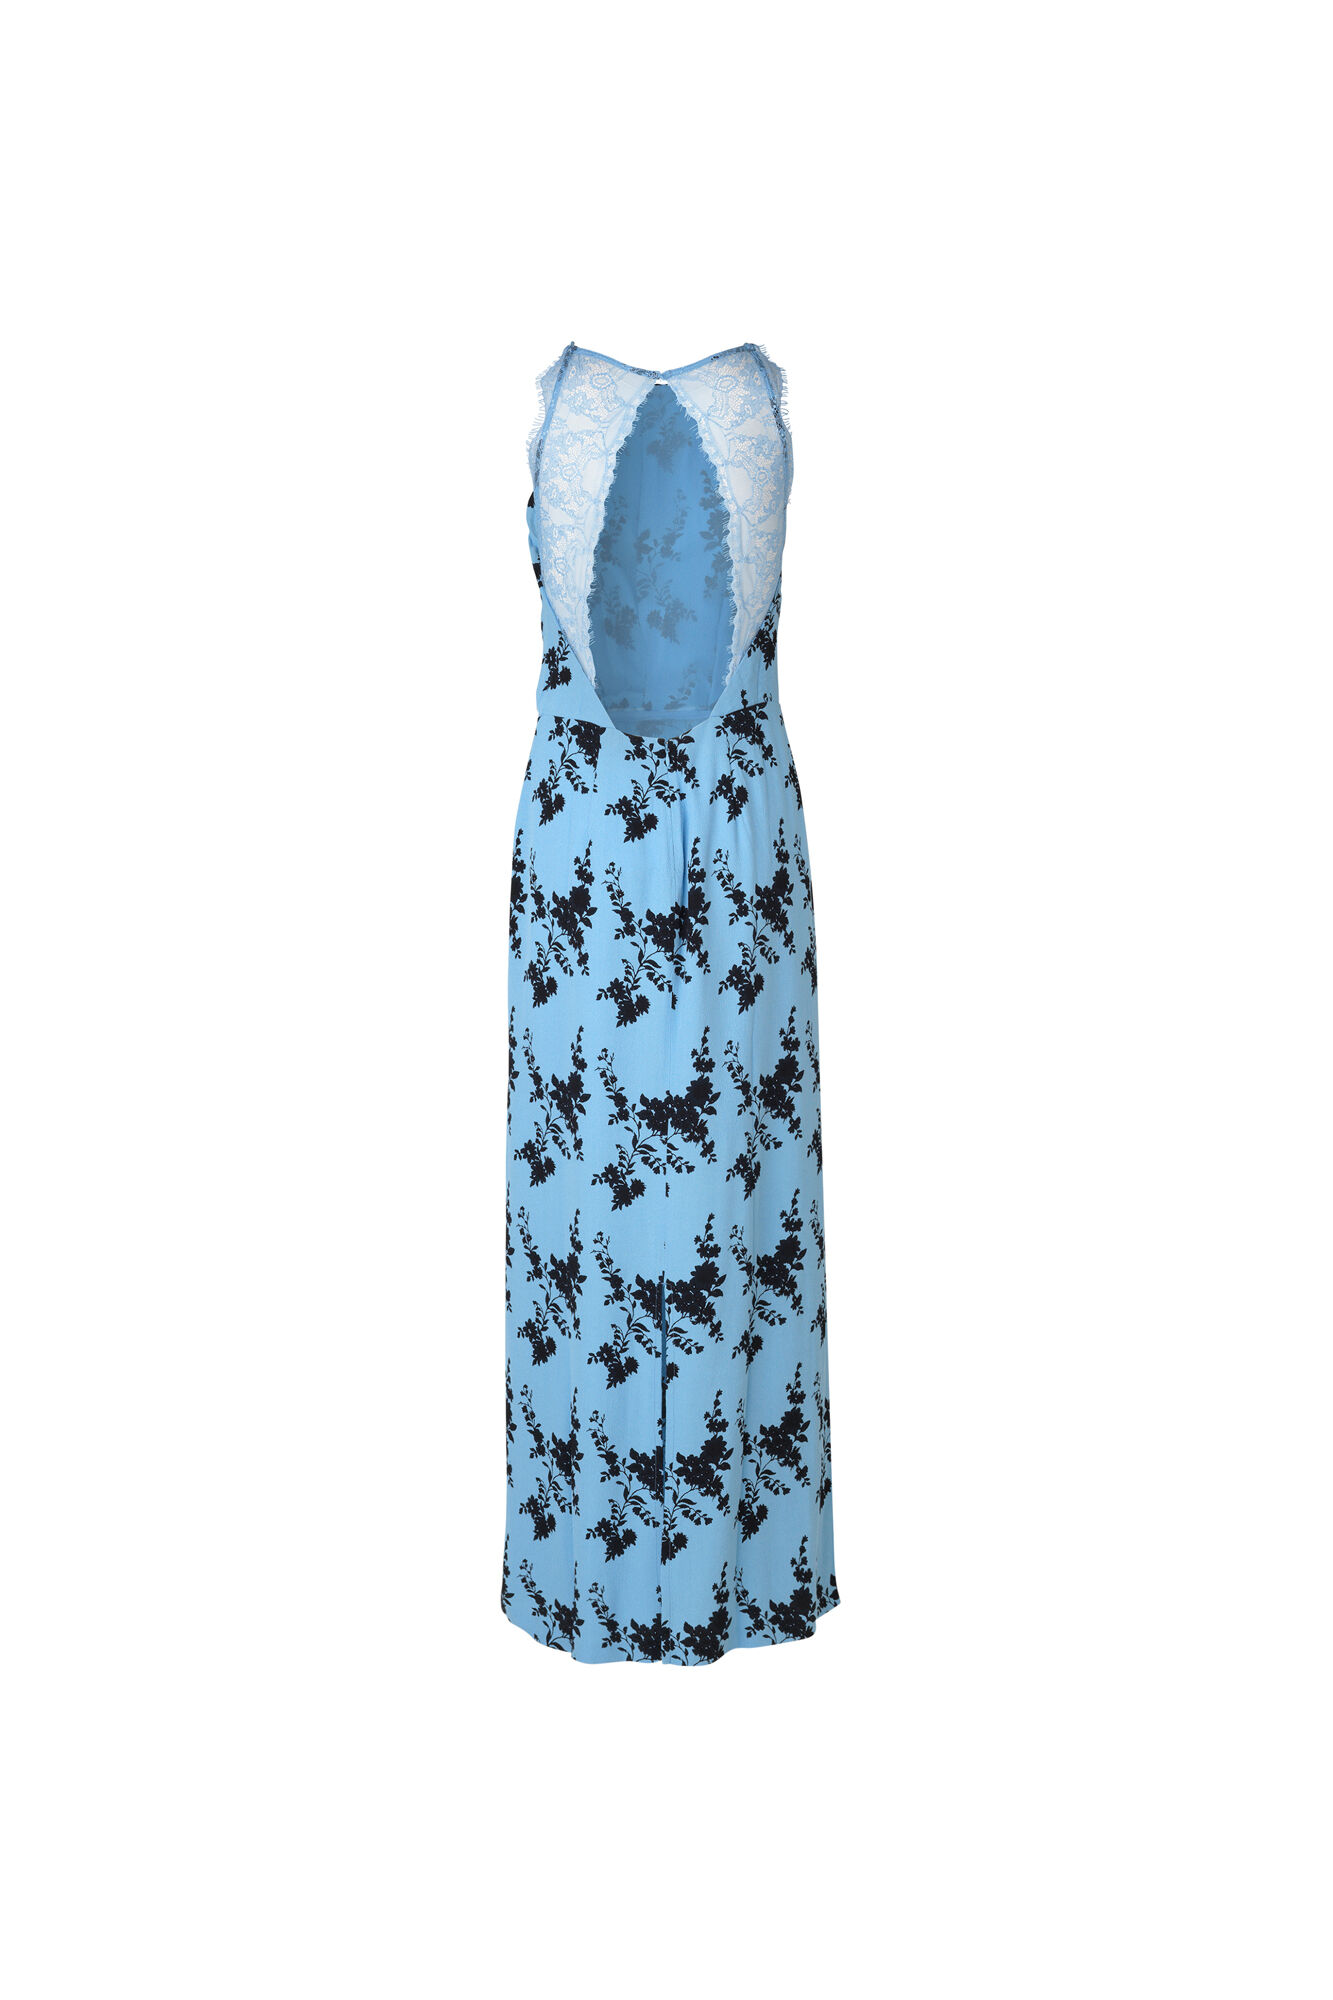 Willow dress long aop 5687